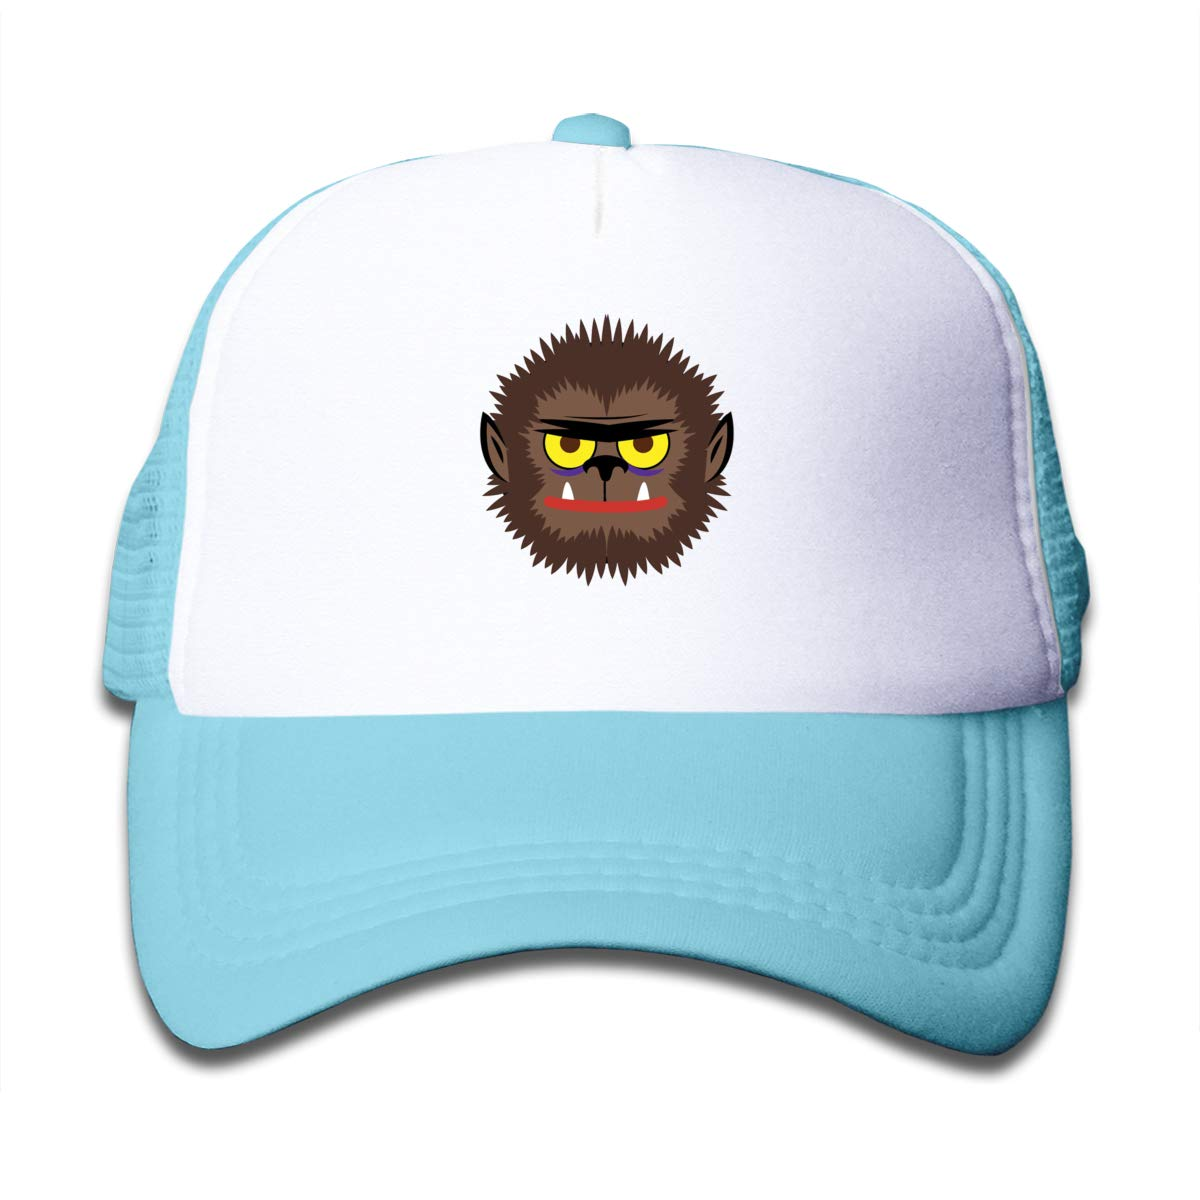 8b02be97057 Amazon.com  Cartoon Werewolf Head Mesh Baseball Caps Kid s Adjustable  Trucker Hat Sky Blue  Clothing